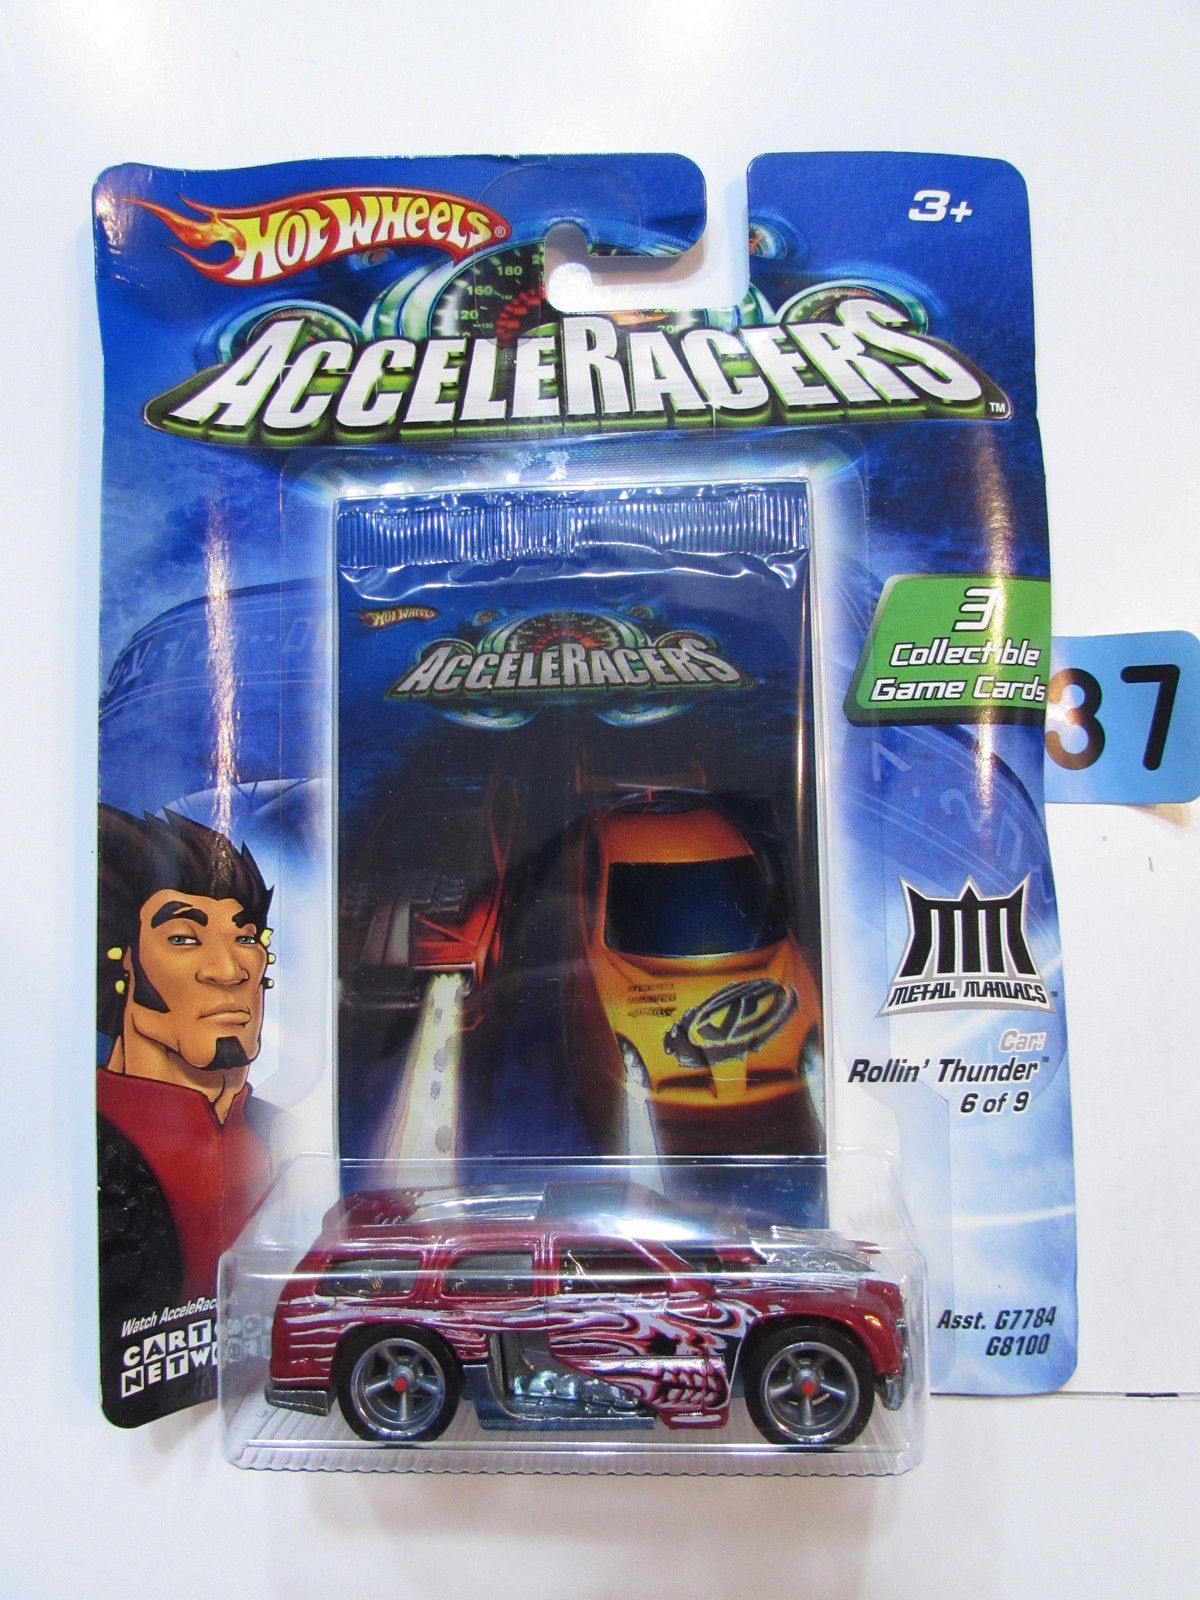 2004 HOT WHEELS ACCELERACERS ROLLIN' THUNDER #6/9 - 3 COLLECTIBLE GAME CARDS